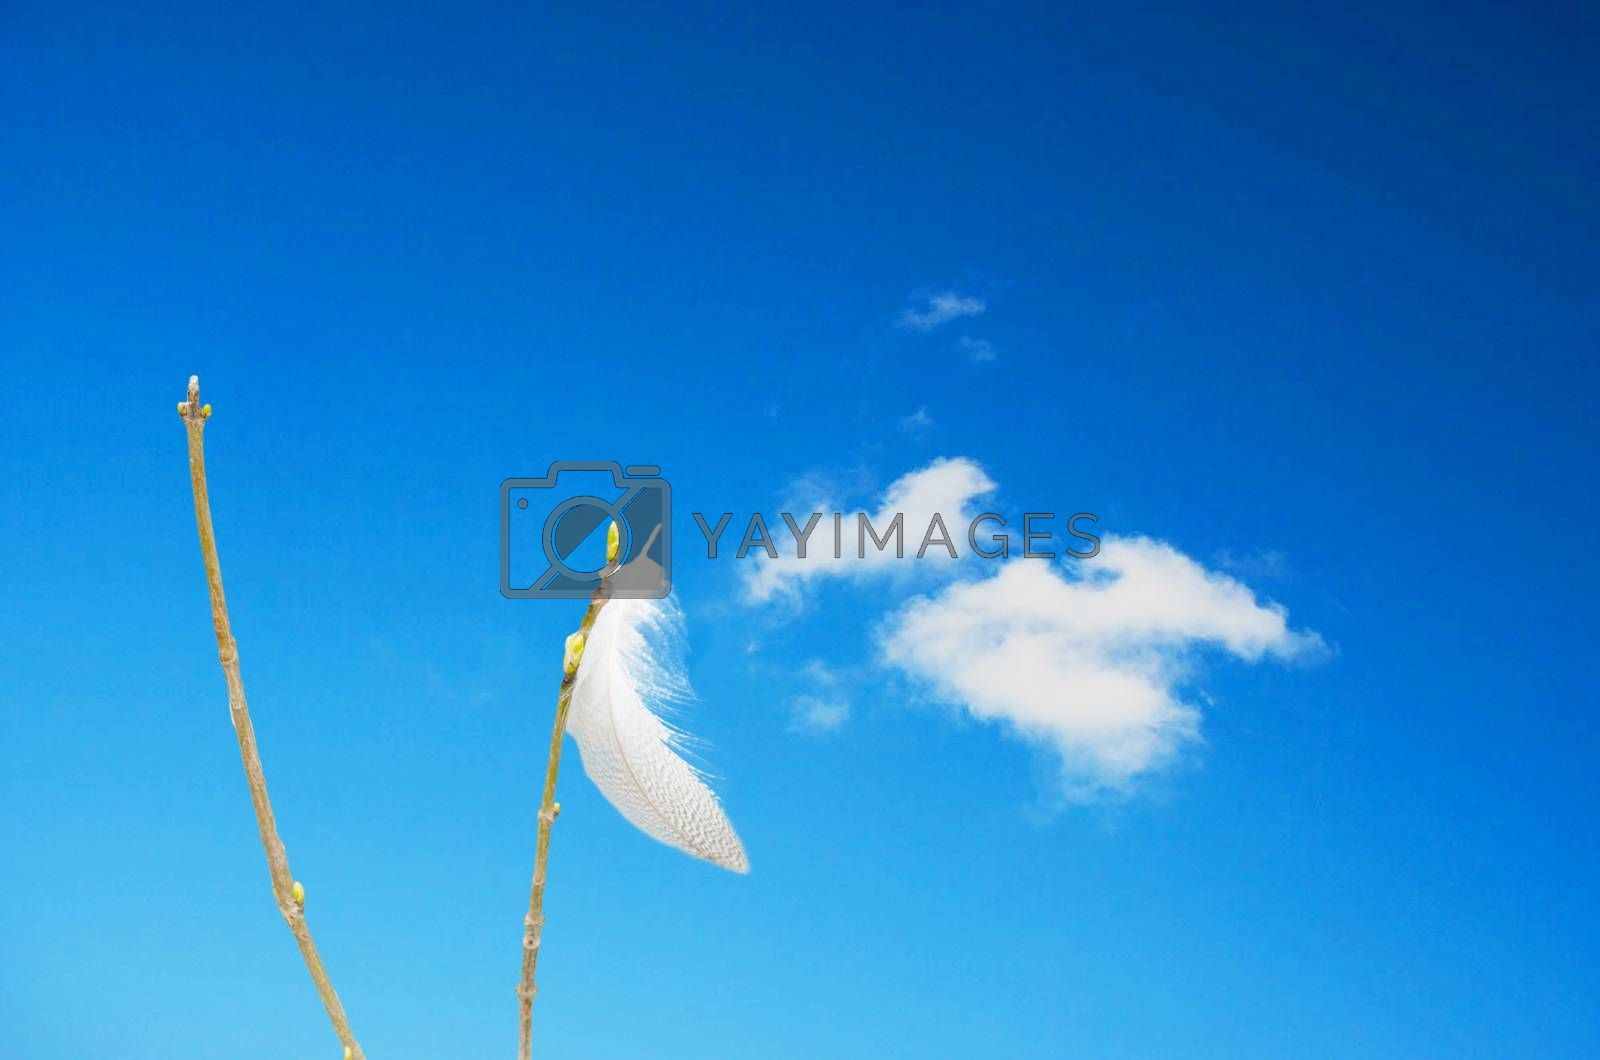 Royalty free image of Spring on blade of grass in front of blue sky by JFsPic